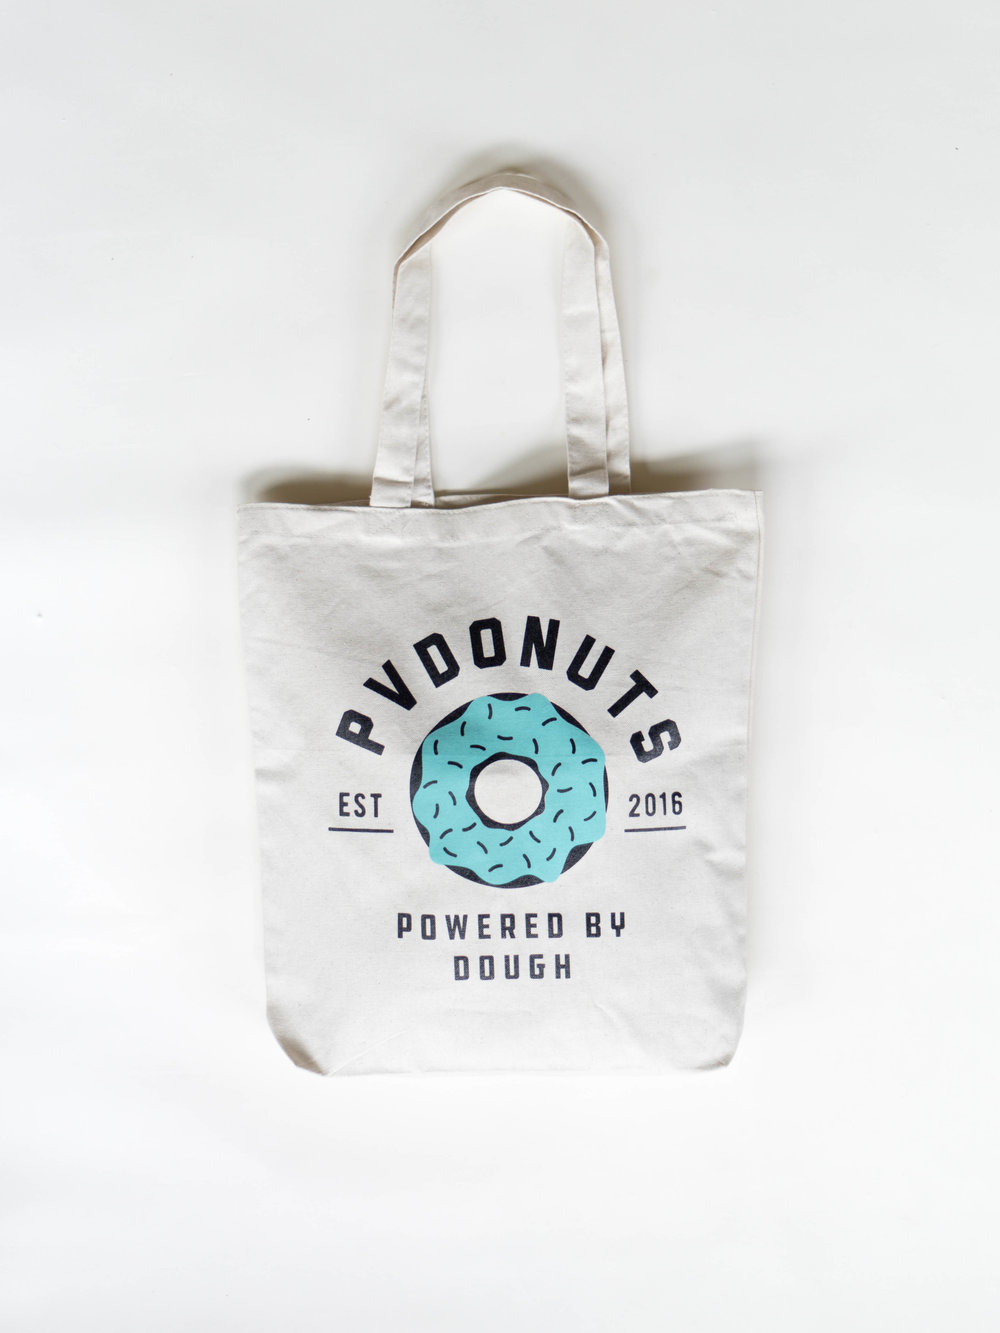 Powered by Dough Tote Bag - $12    Sizing may vary; print will not